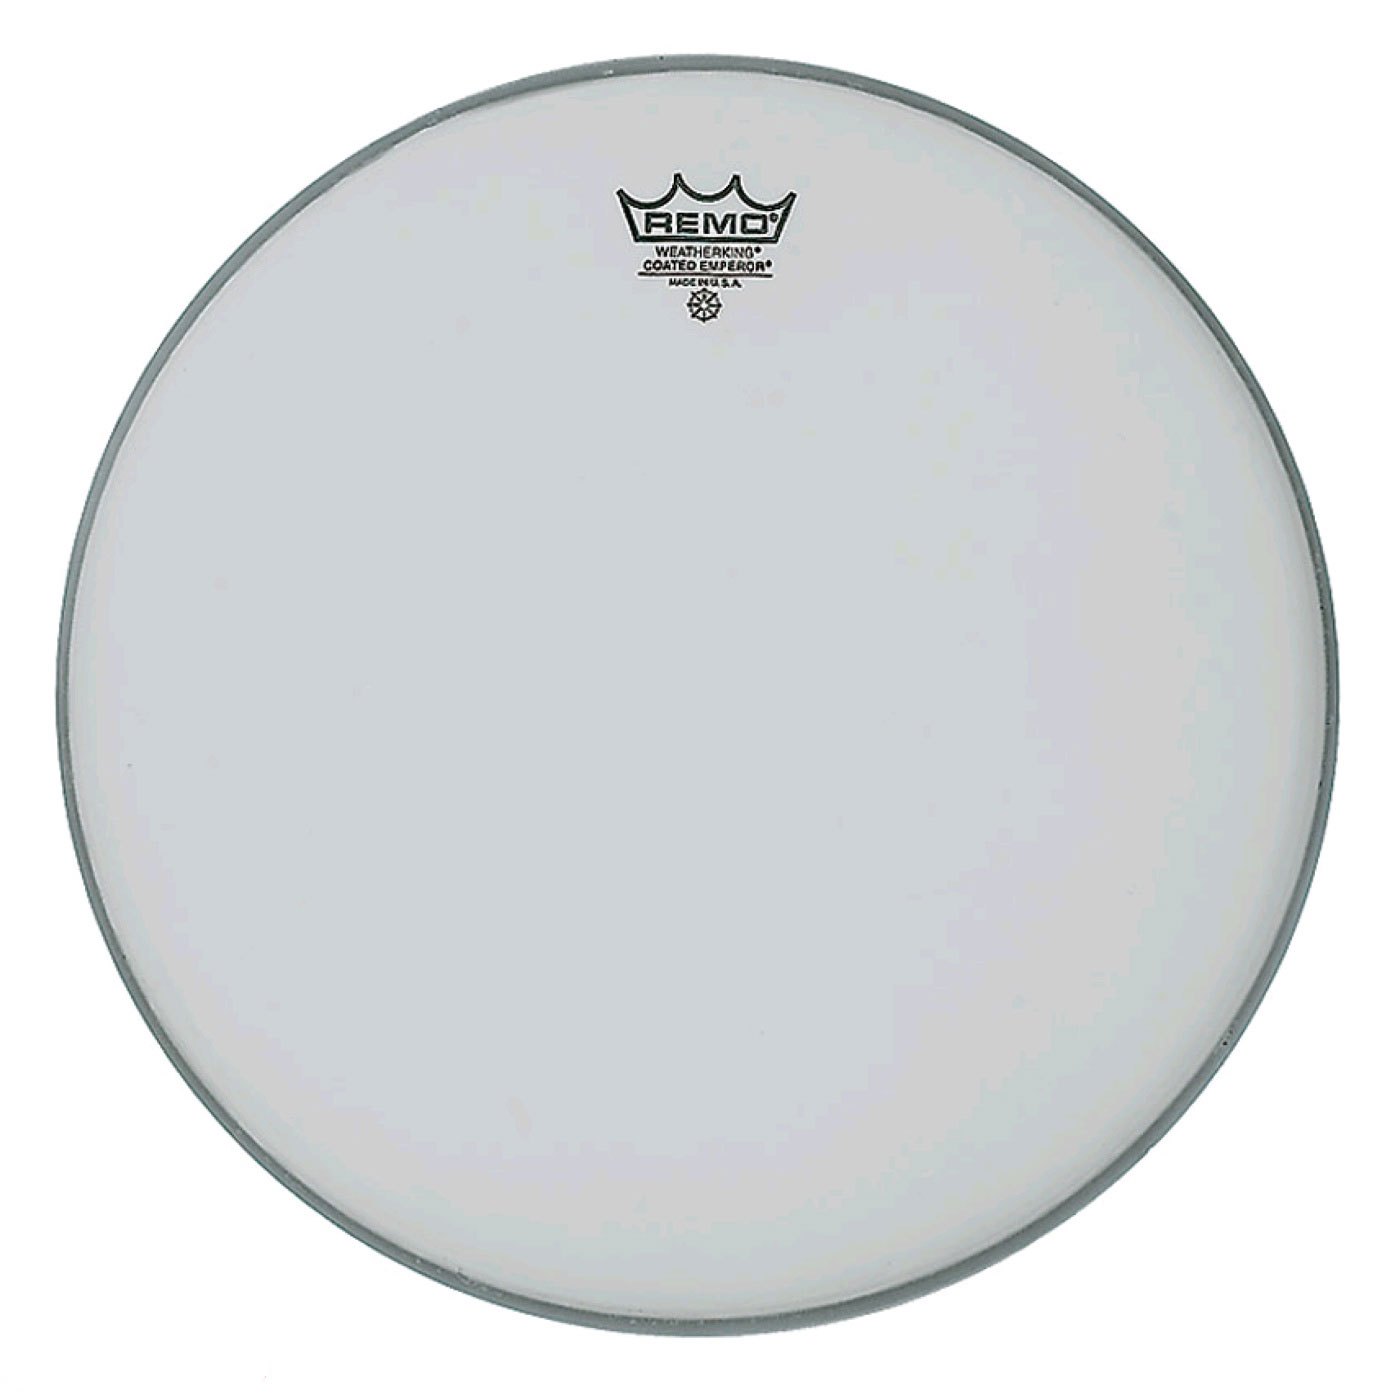 "Remo 10"" Emperor Coated Drum Head"